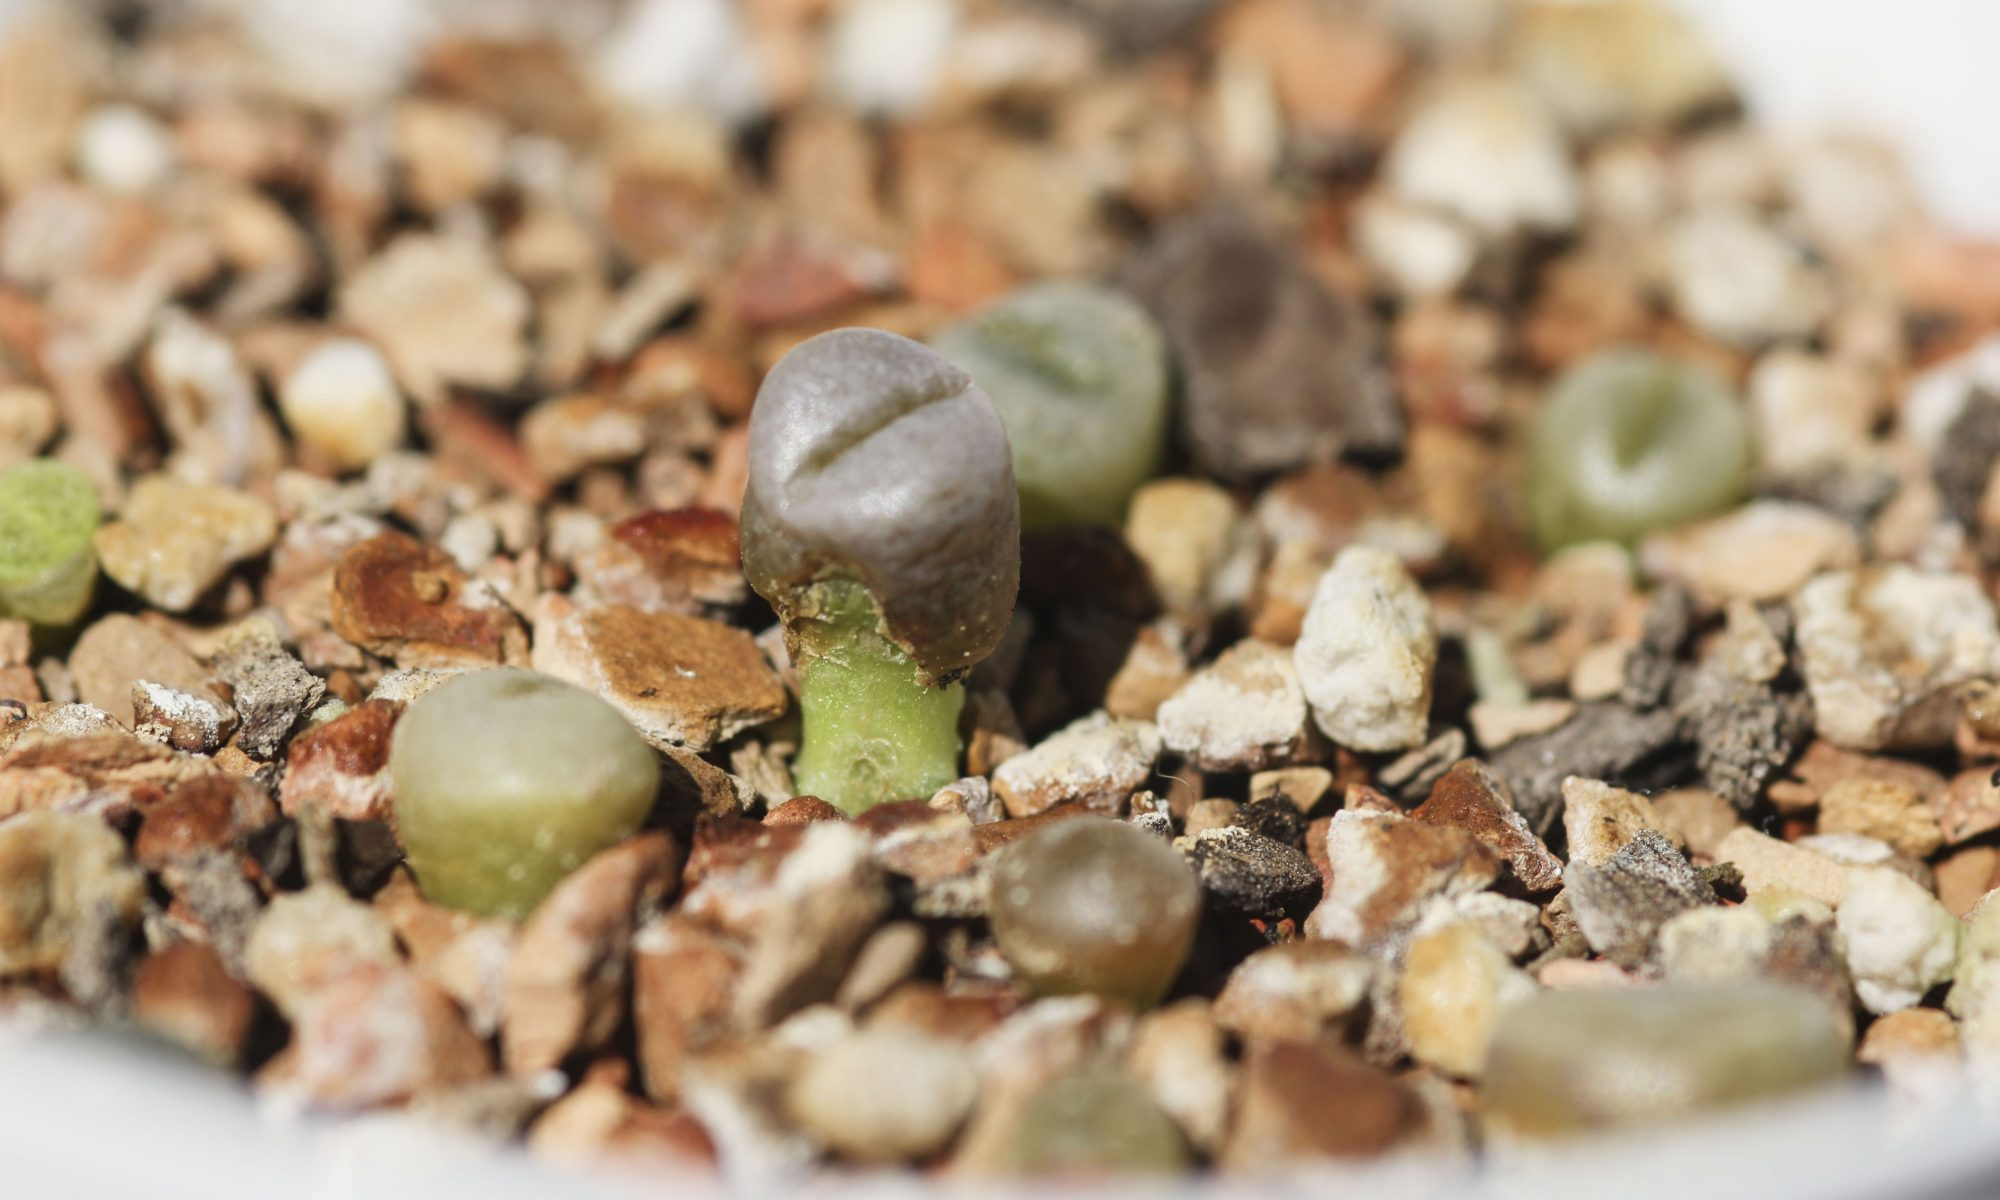 Lithops progress splitting - October 22